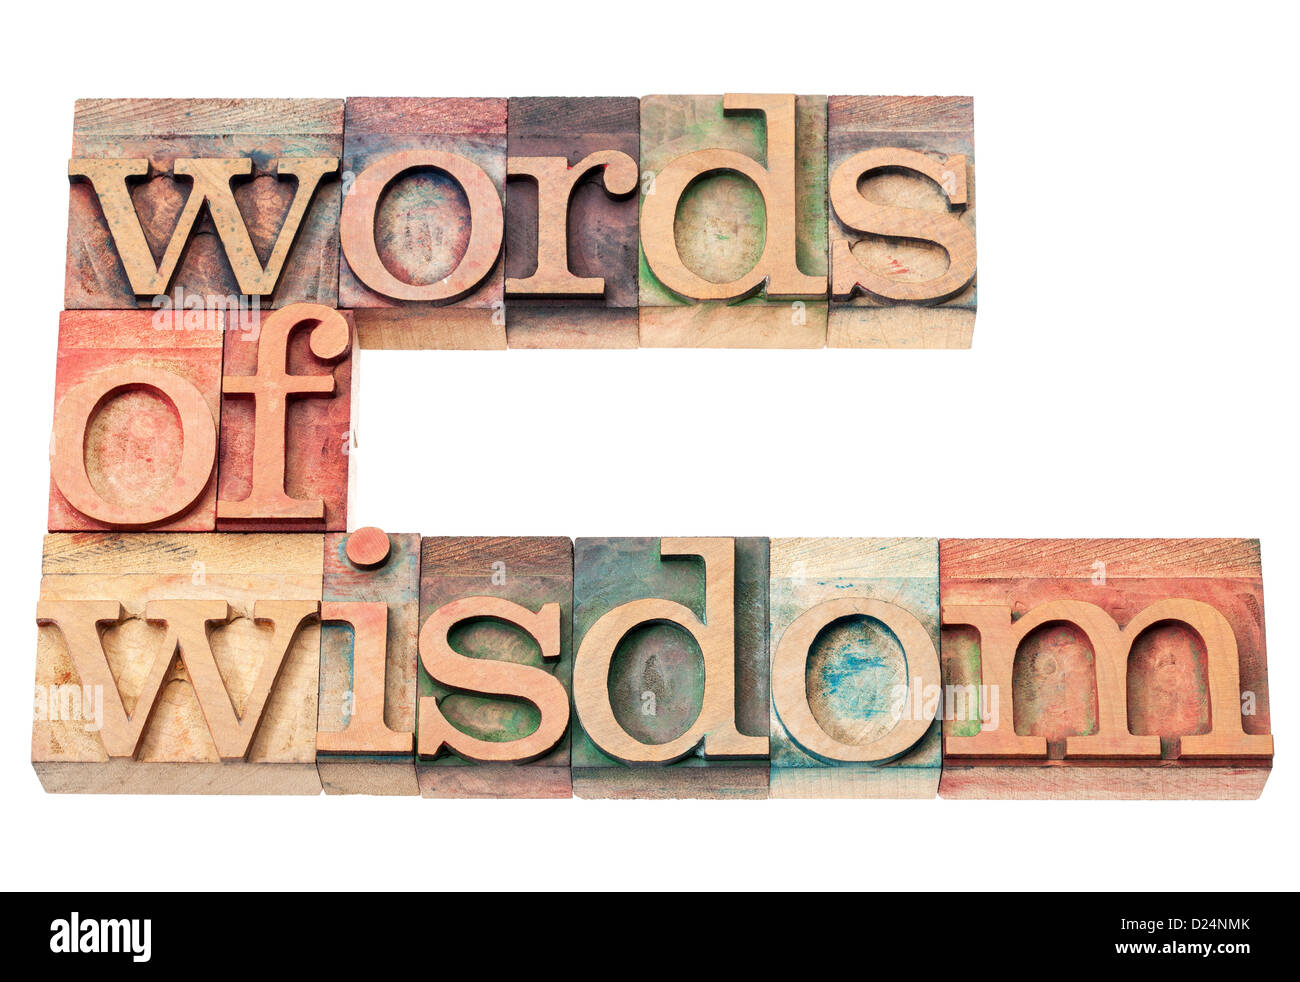 words of wisdom - isolated text in vintage letterpress wood type printing blocks - Stock Image